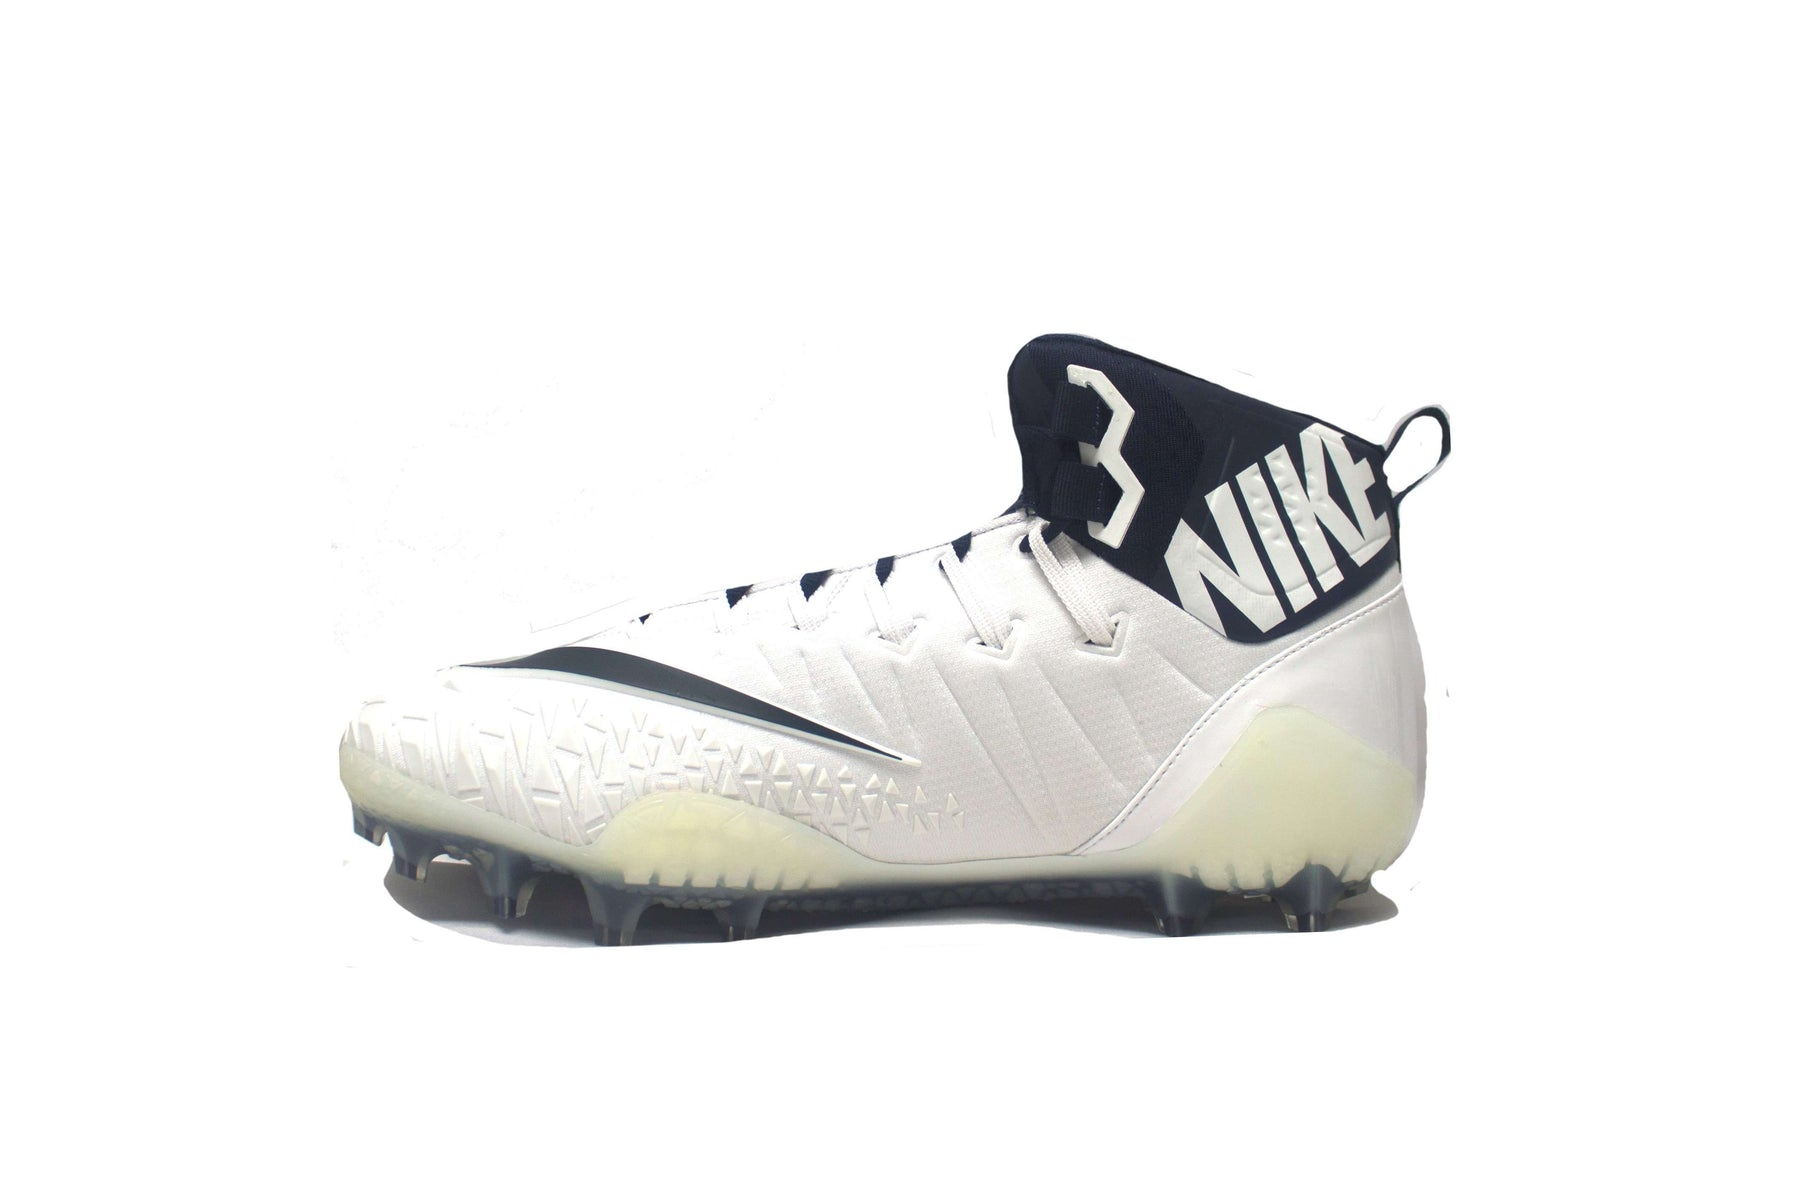 48ced259f05 ... Nike Force Savage Pro TD Promo Football Cleats - League Outfitters ...